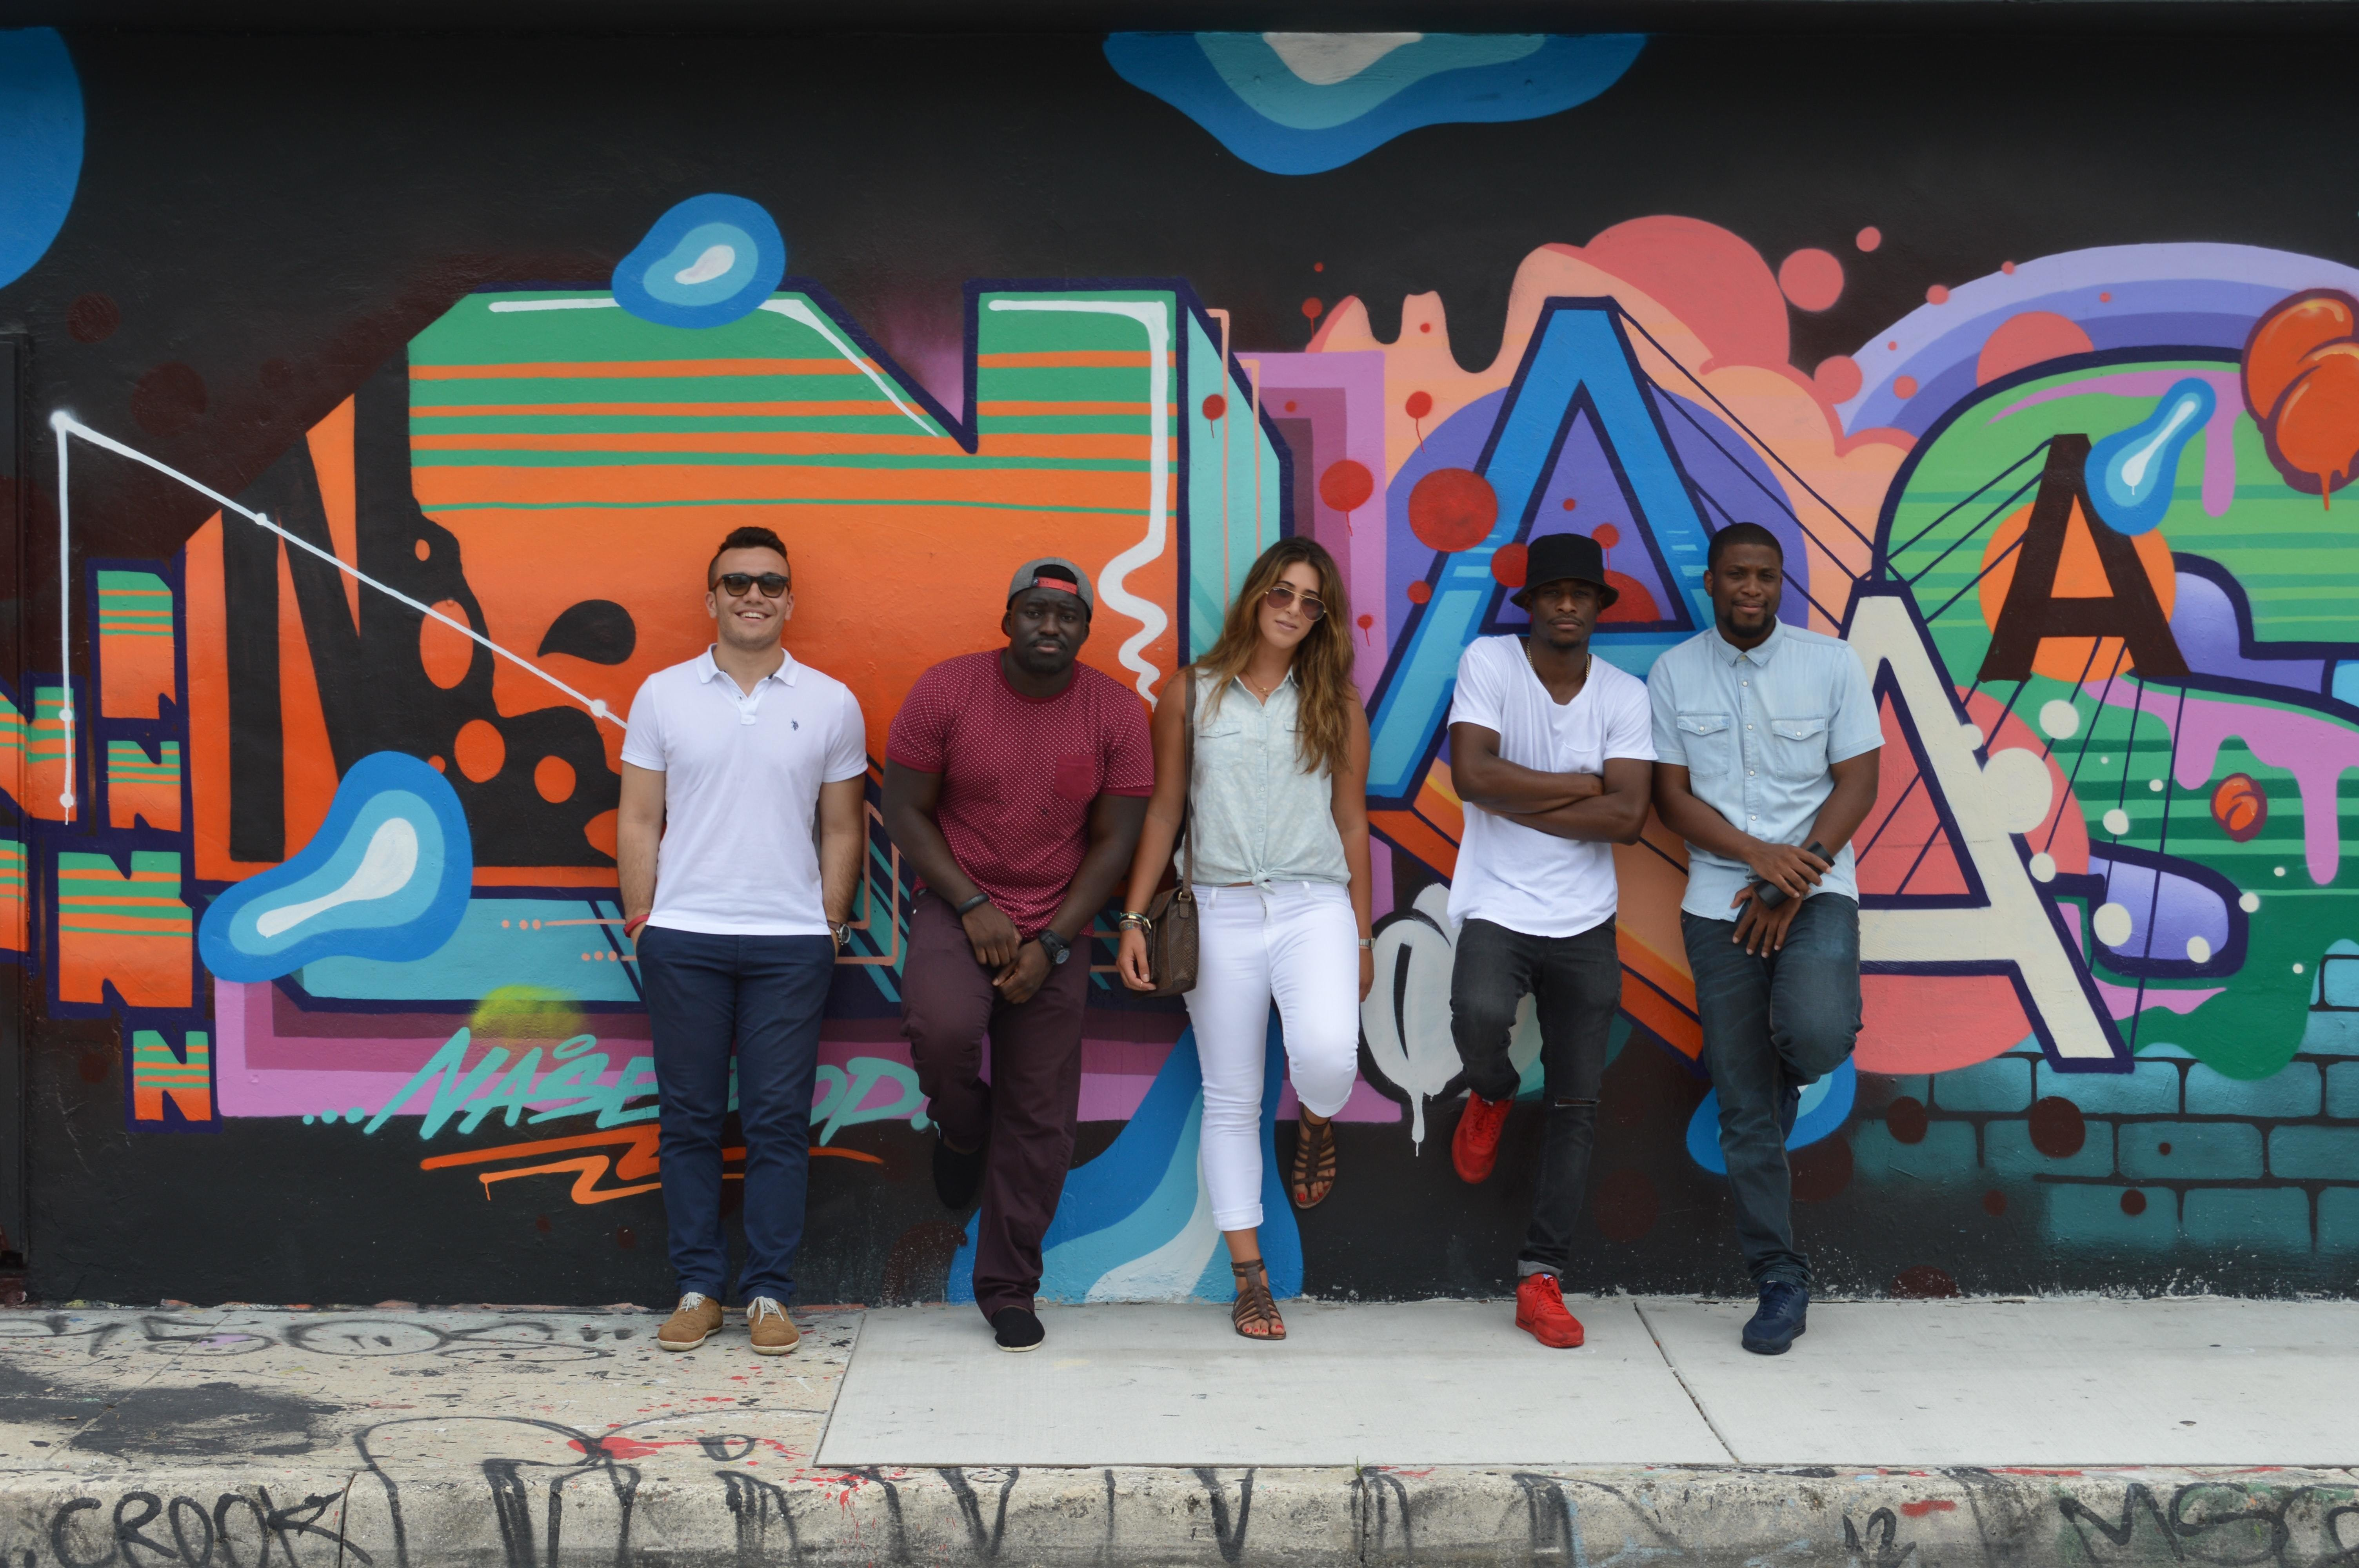 Young people (generation Z) standing against a wall with graffiti.